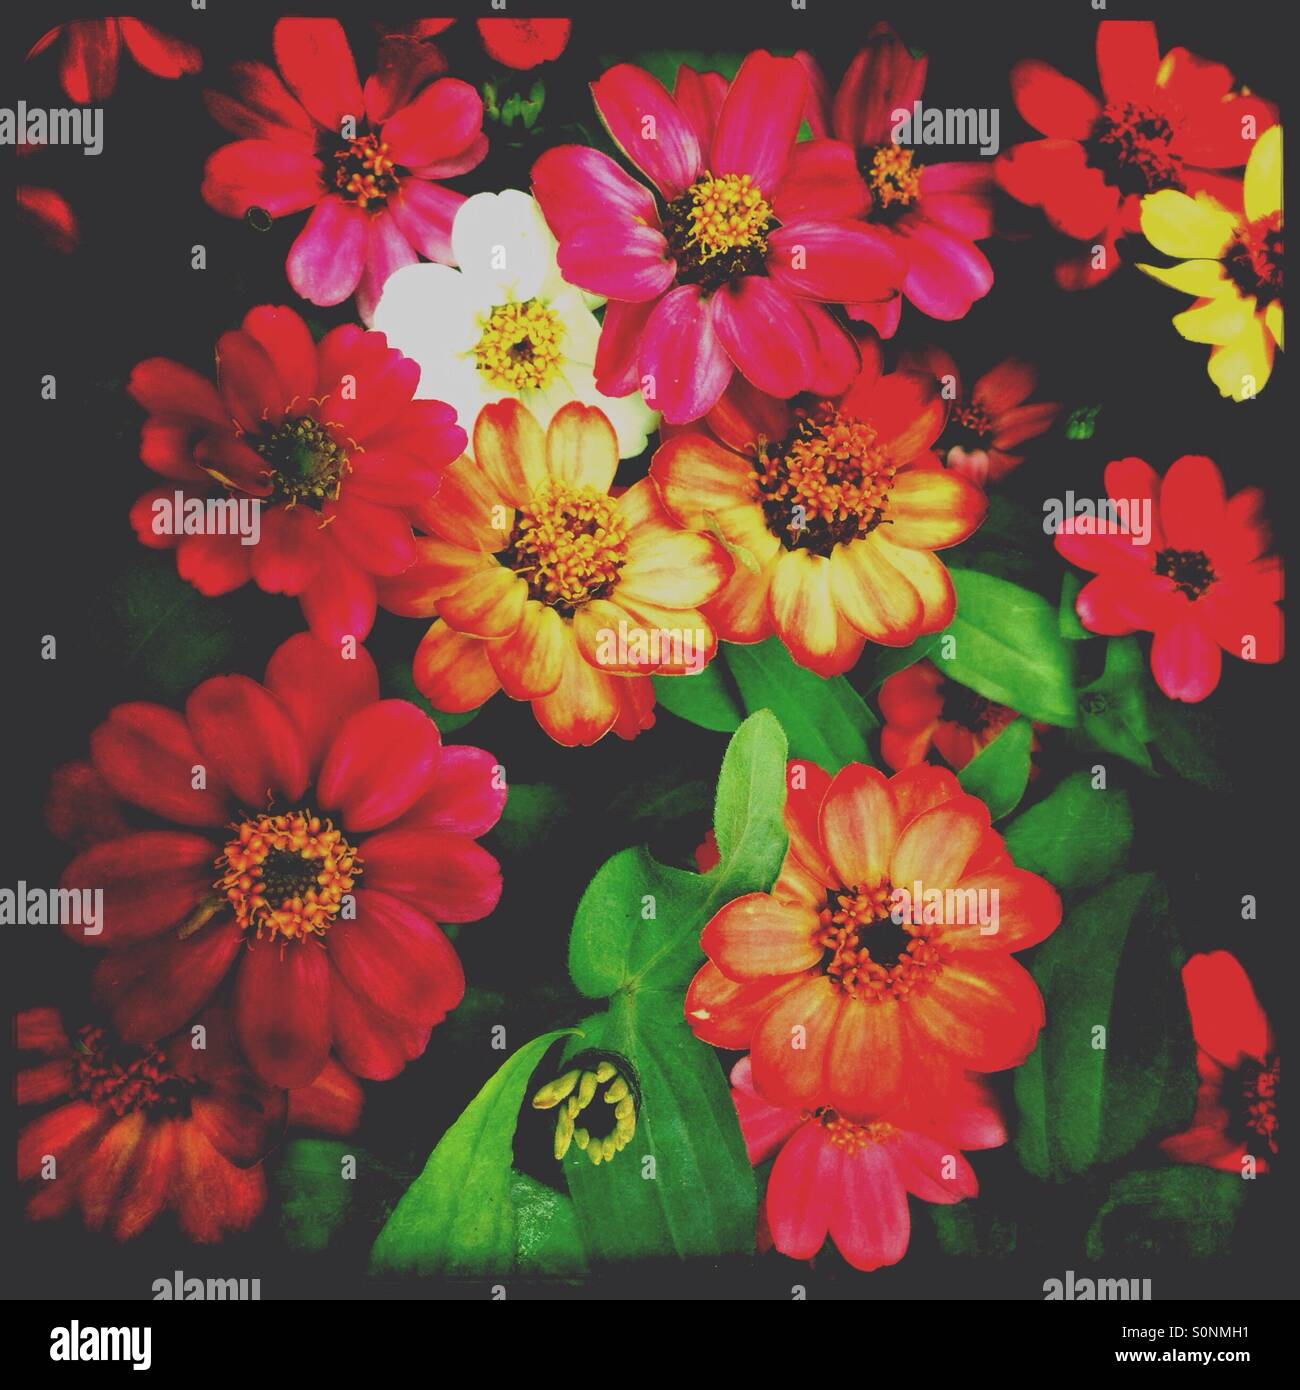 Zinnia flowers with art filter - Stock Image